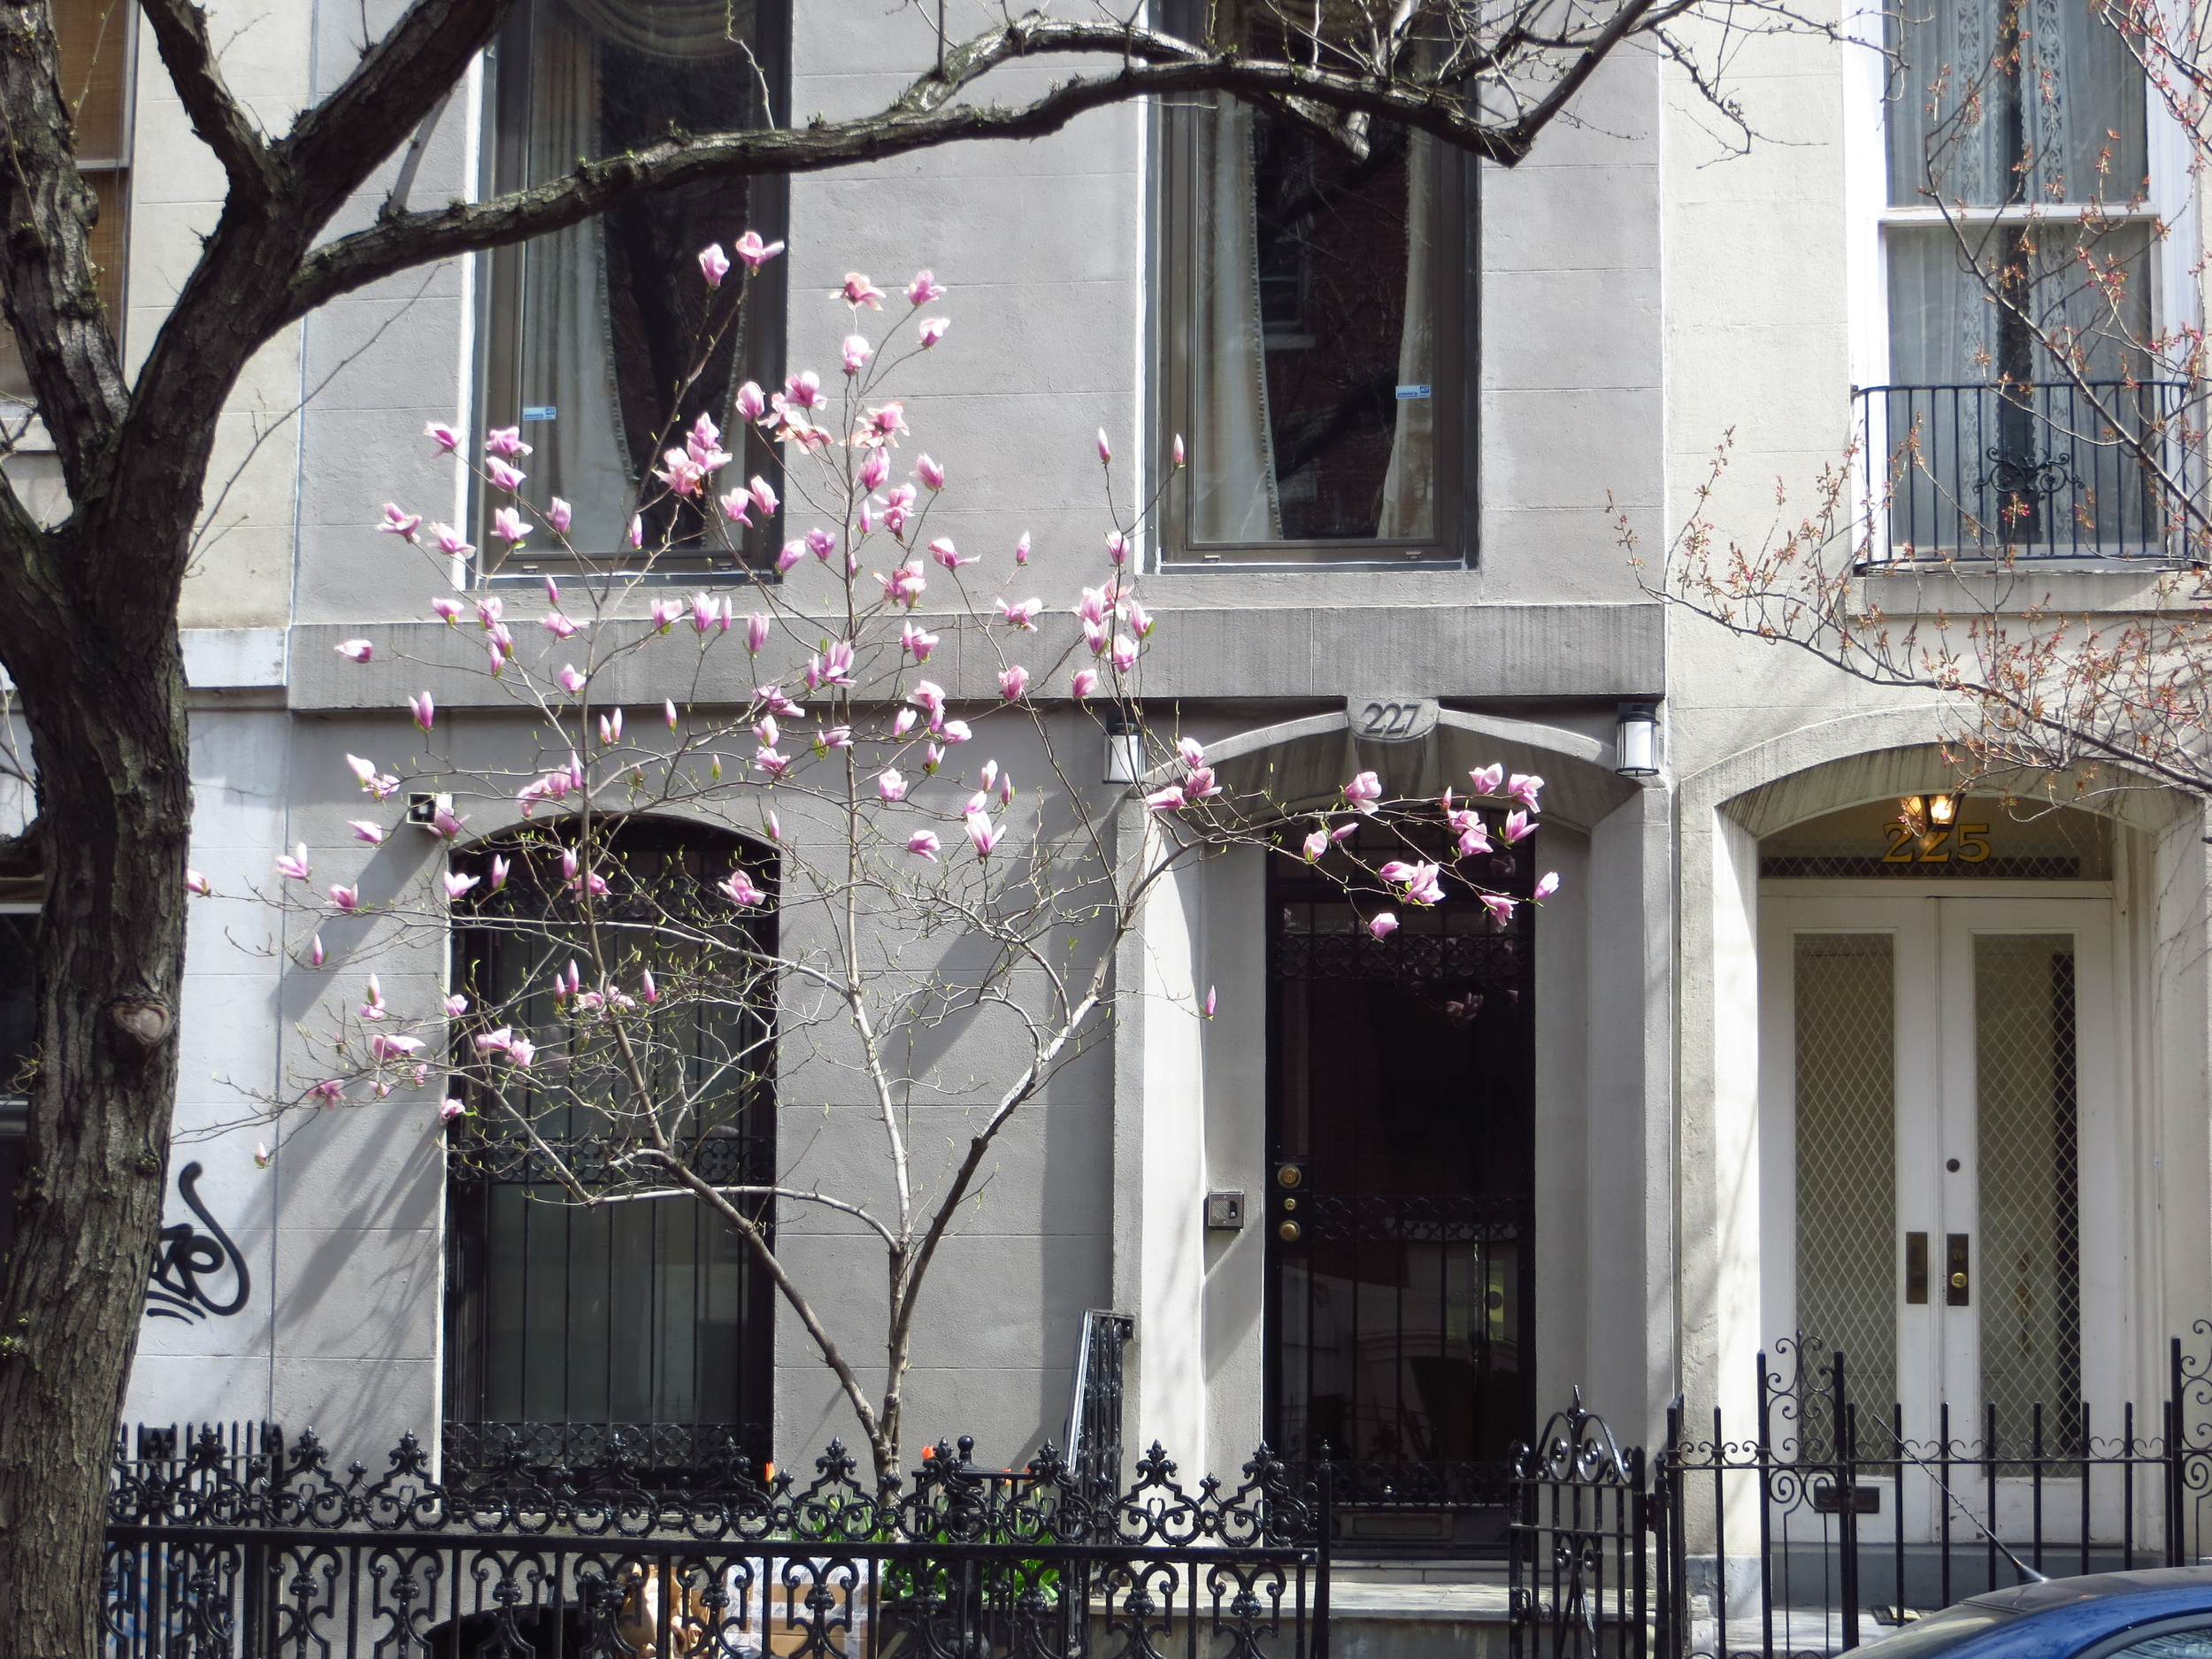 Blooming tree by townhouse